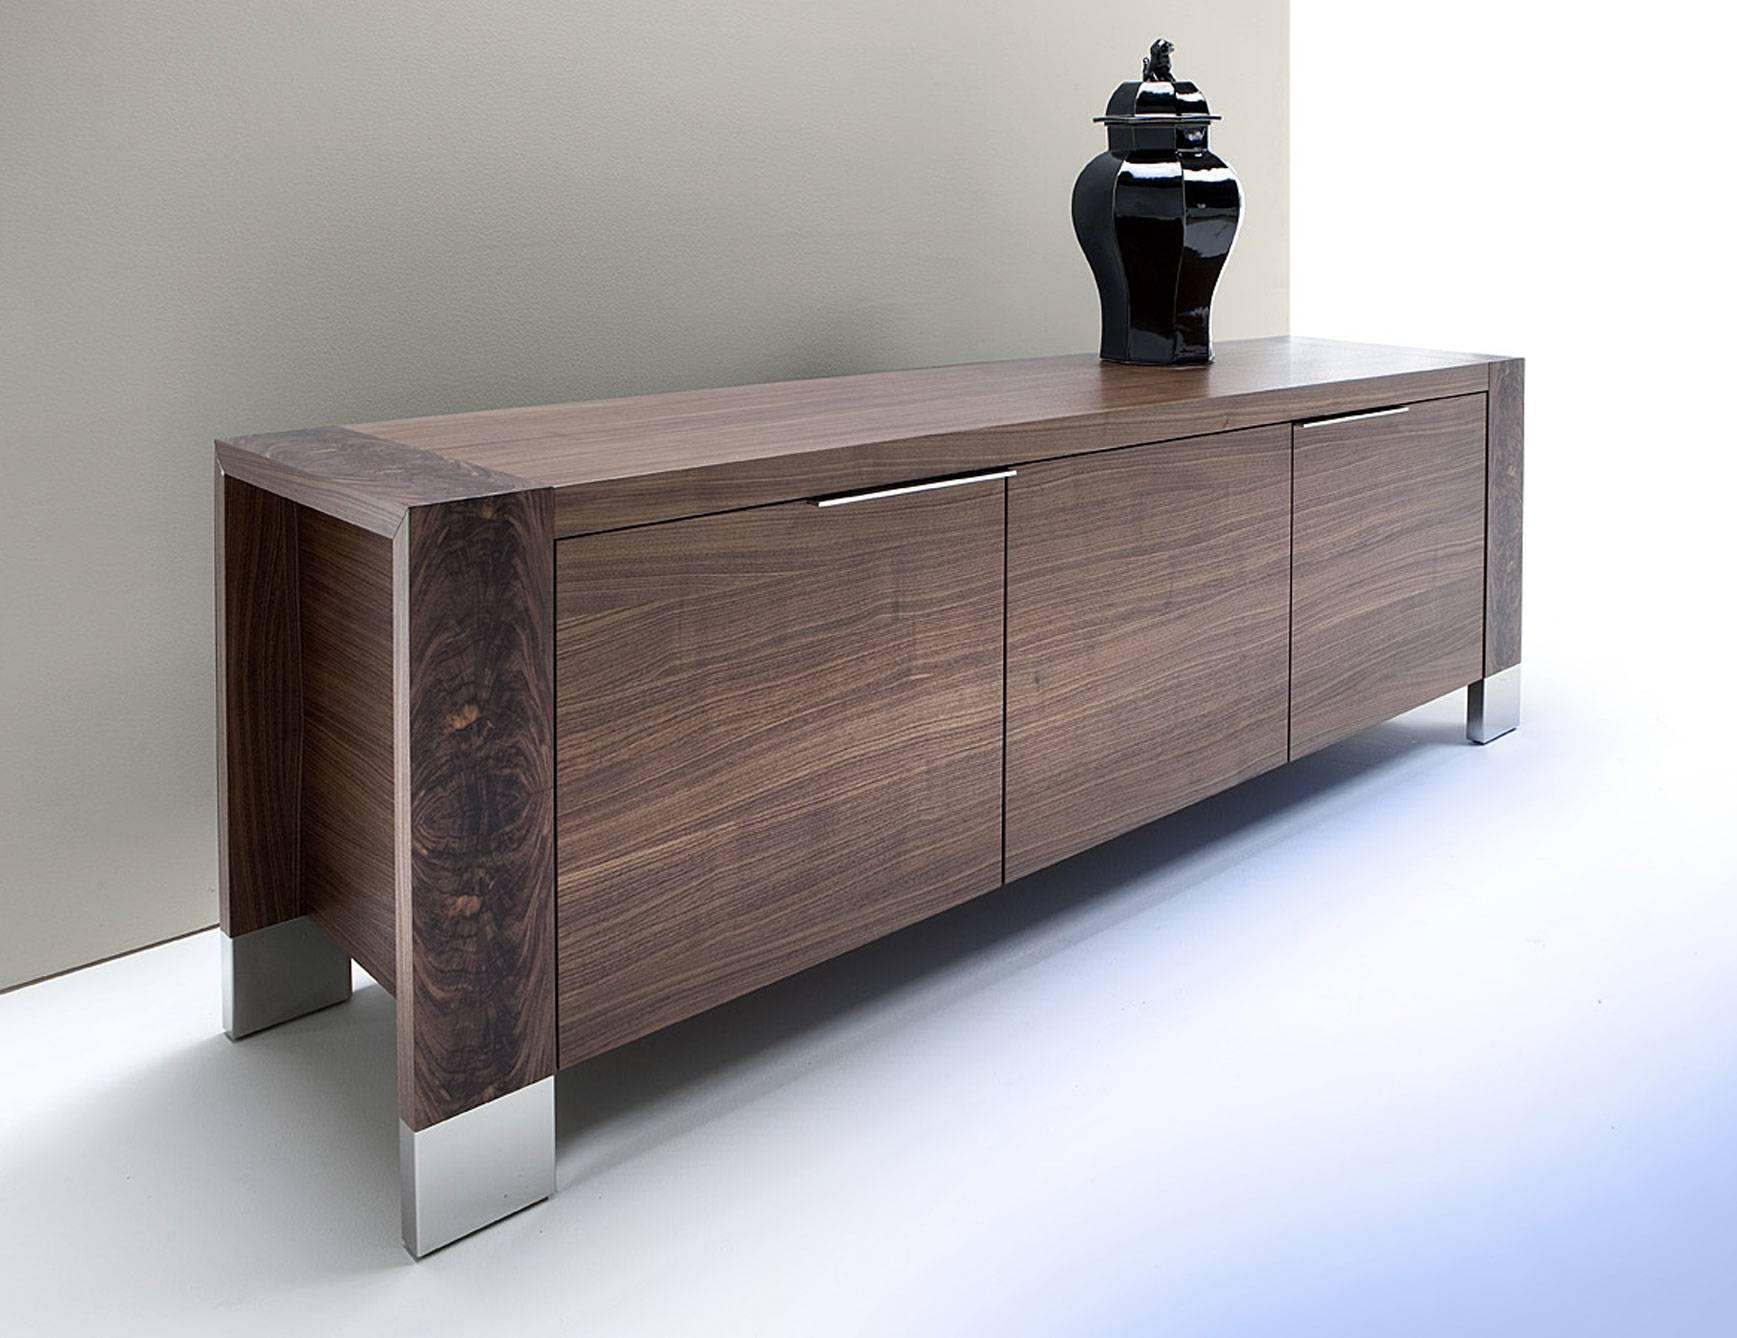 Brilliant Dining Room Buffets Sideboards With Rectangular Shape inside Black and Silver Sideboards (Image 6 of 30)